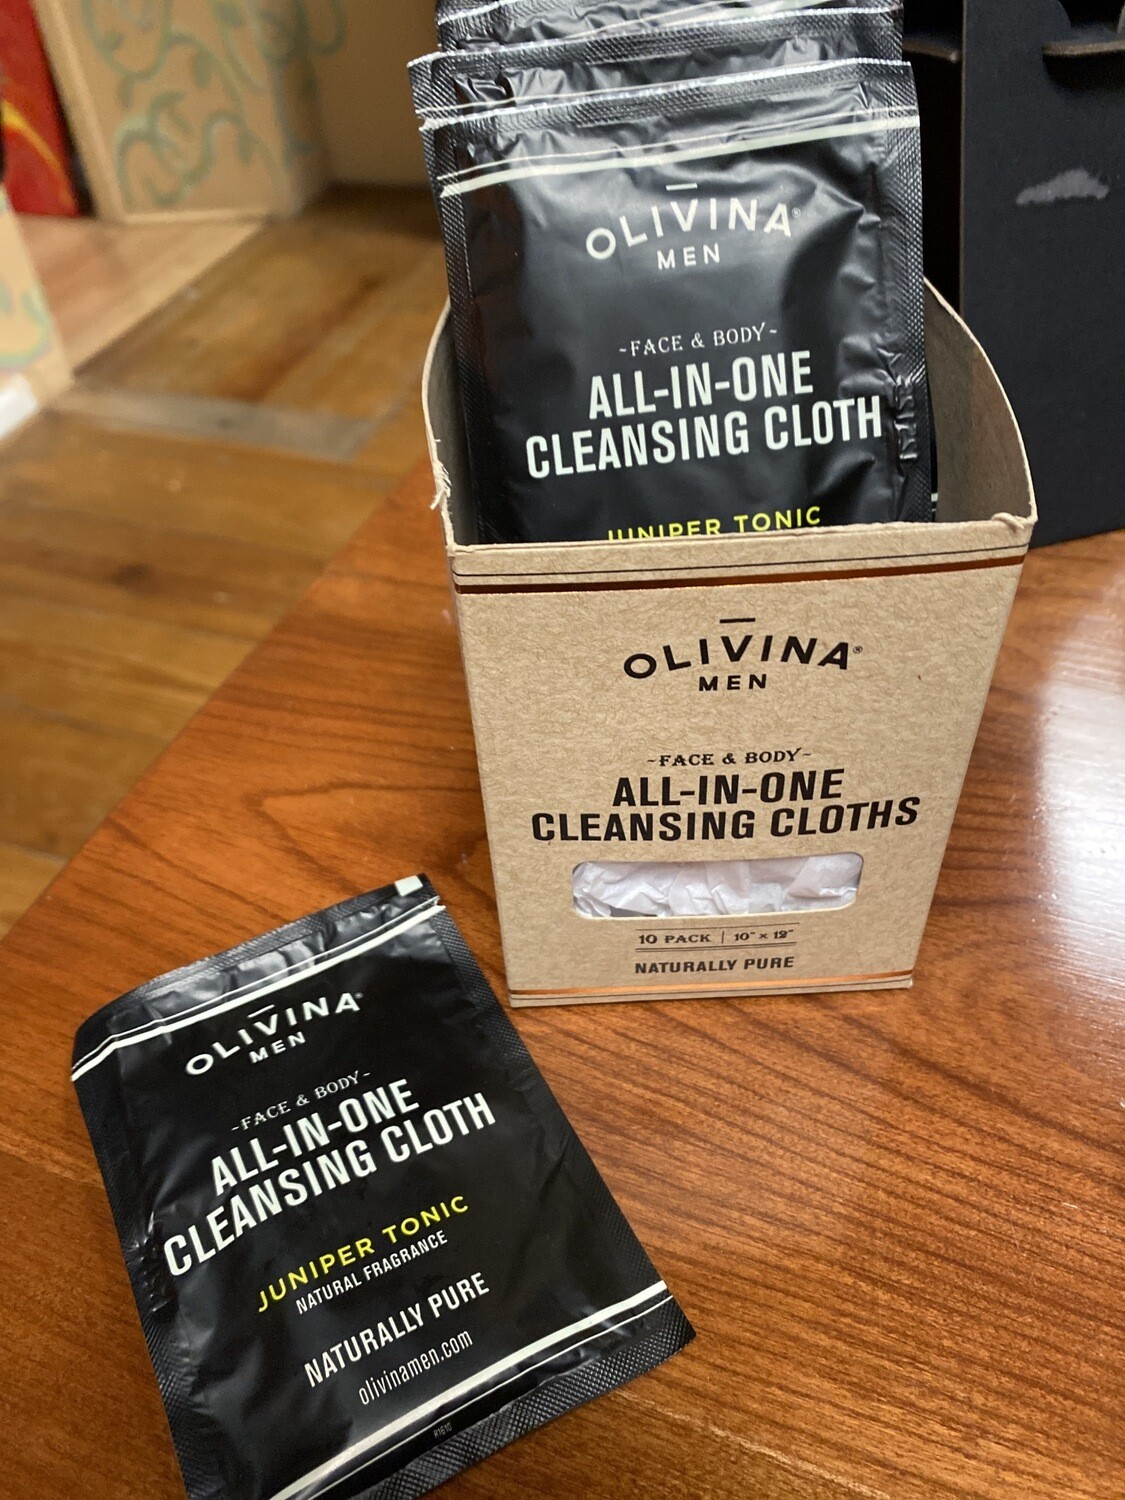 Olivina All-in-one Cleansing Cloths Individual